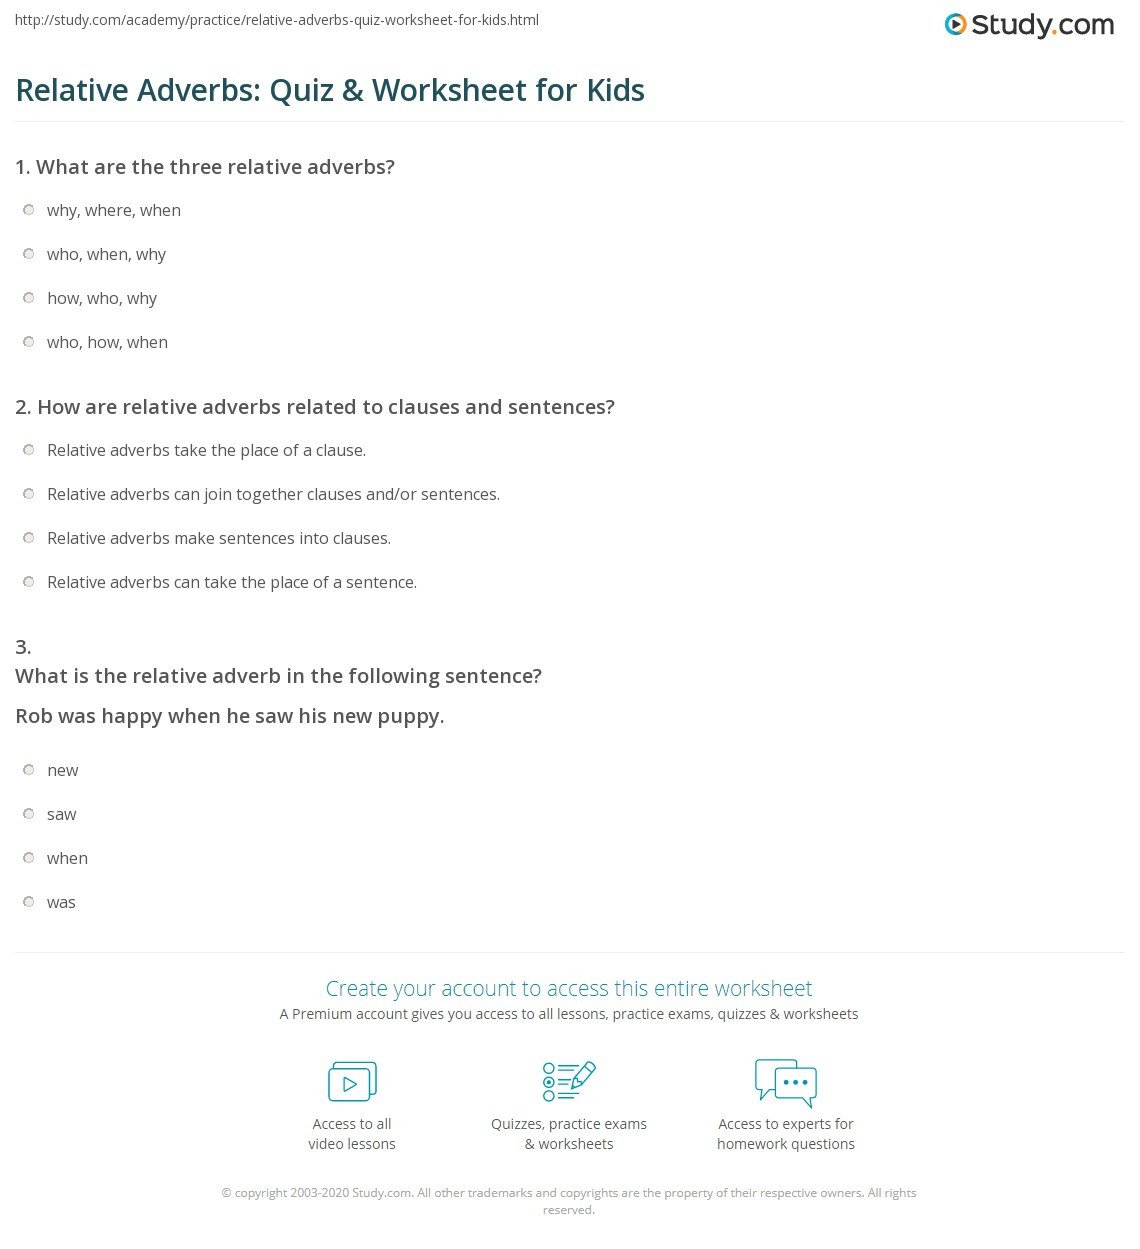 Relative Adverbs Worksheet 4th Grade Relative Adverbs Quiz & Worksheet for Kids